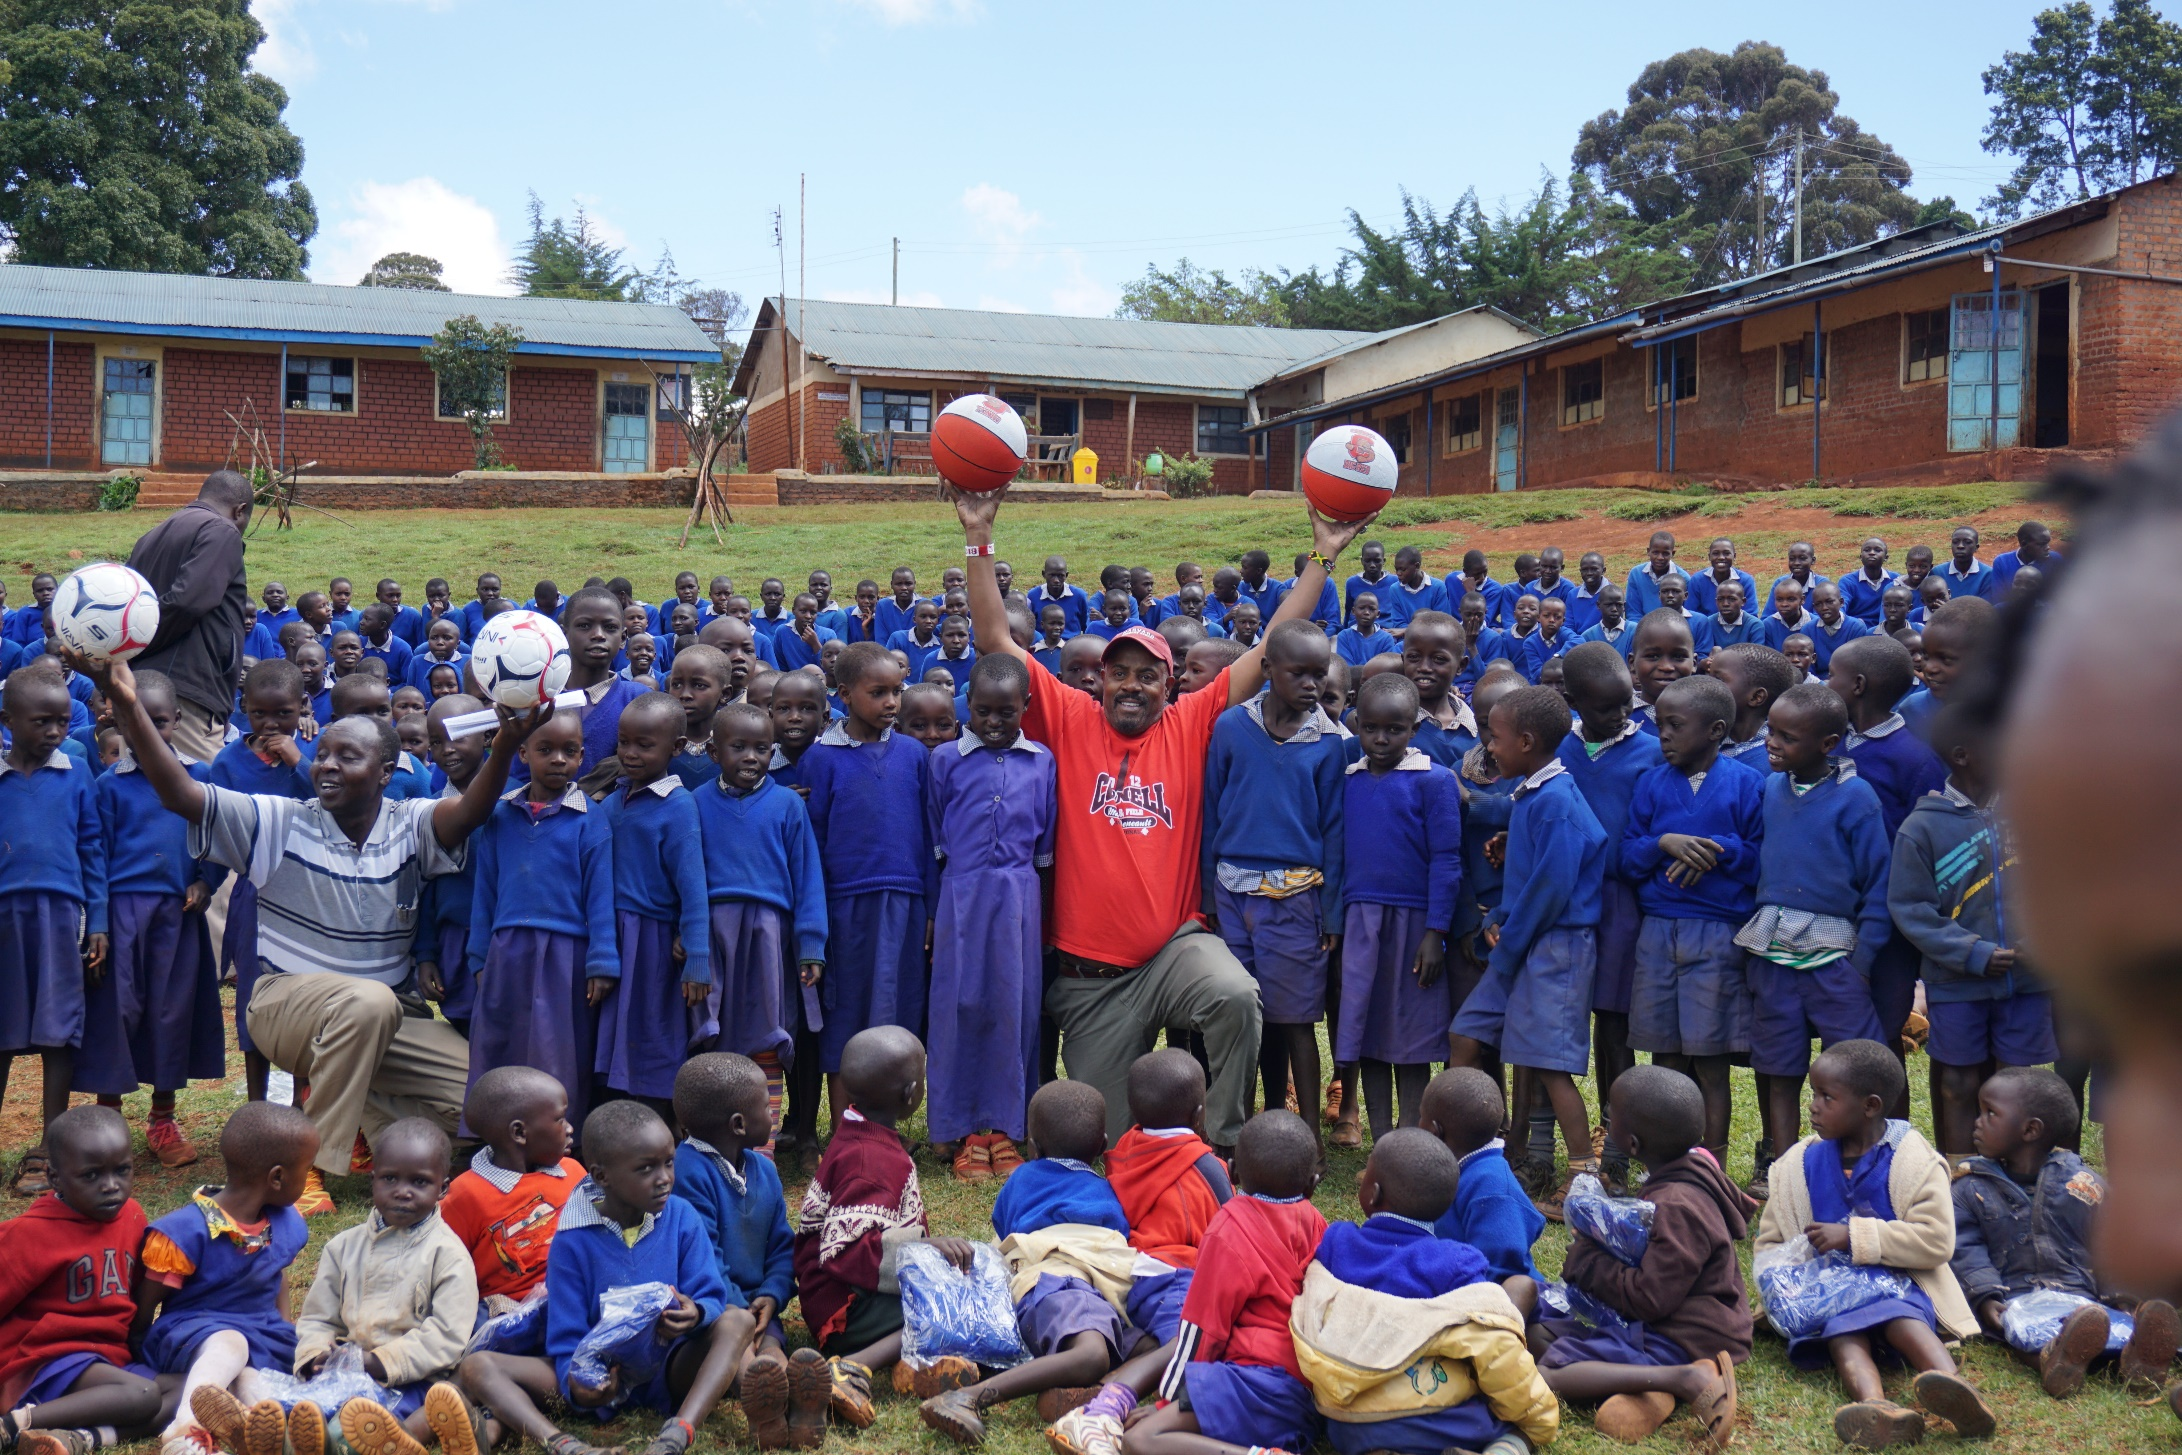 CWA director Kevin Thompson distributing soccer and basketball's with Kamariny School Principal Robert Kiptoo